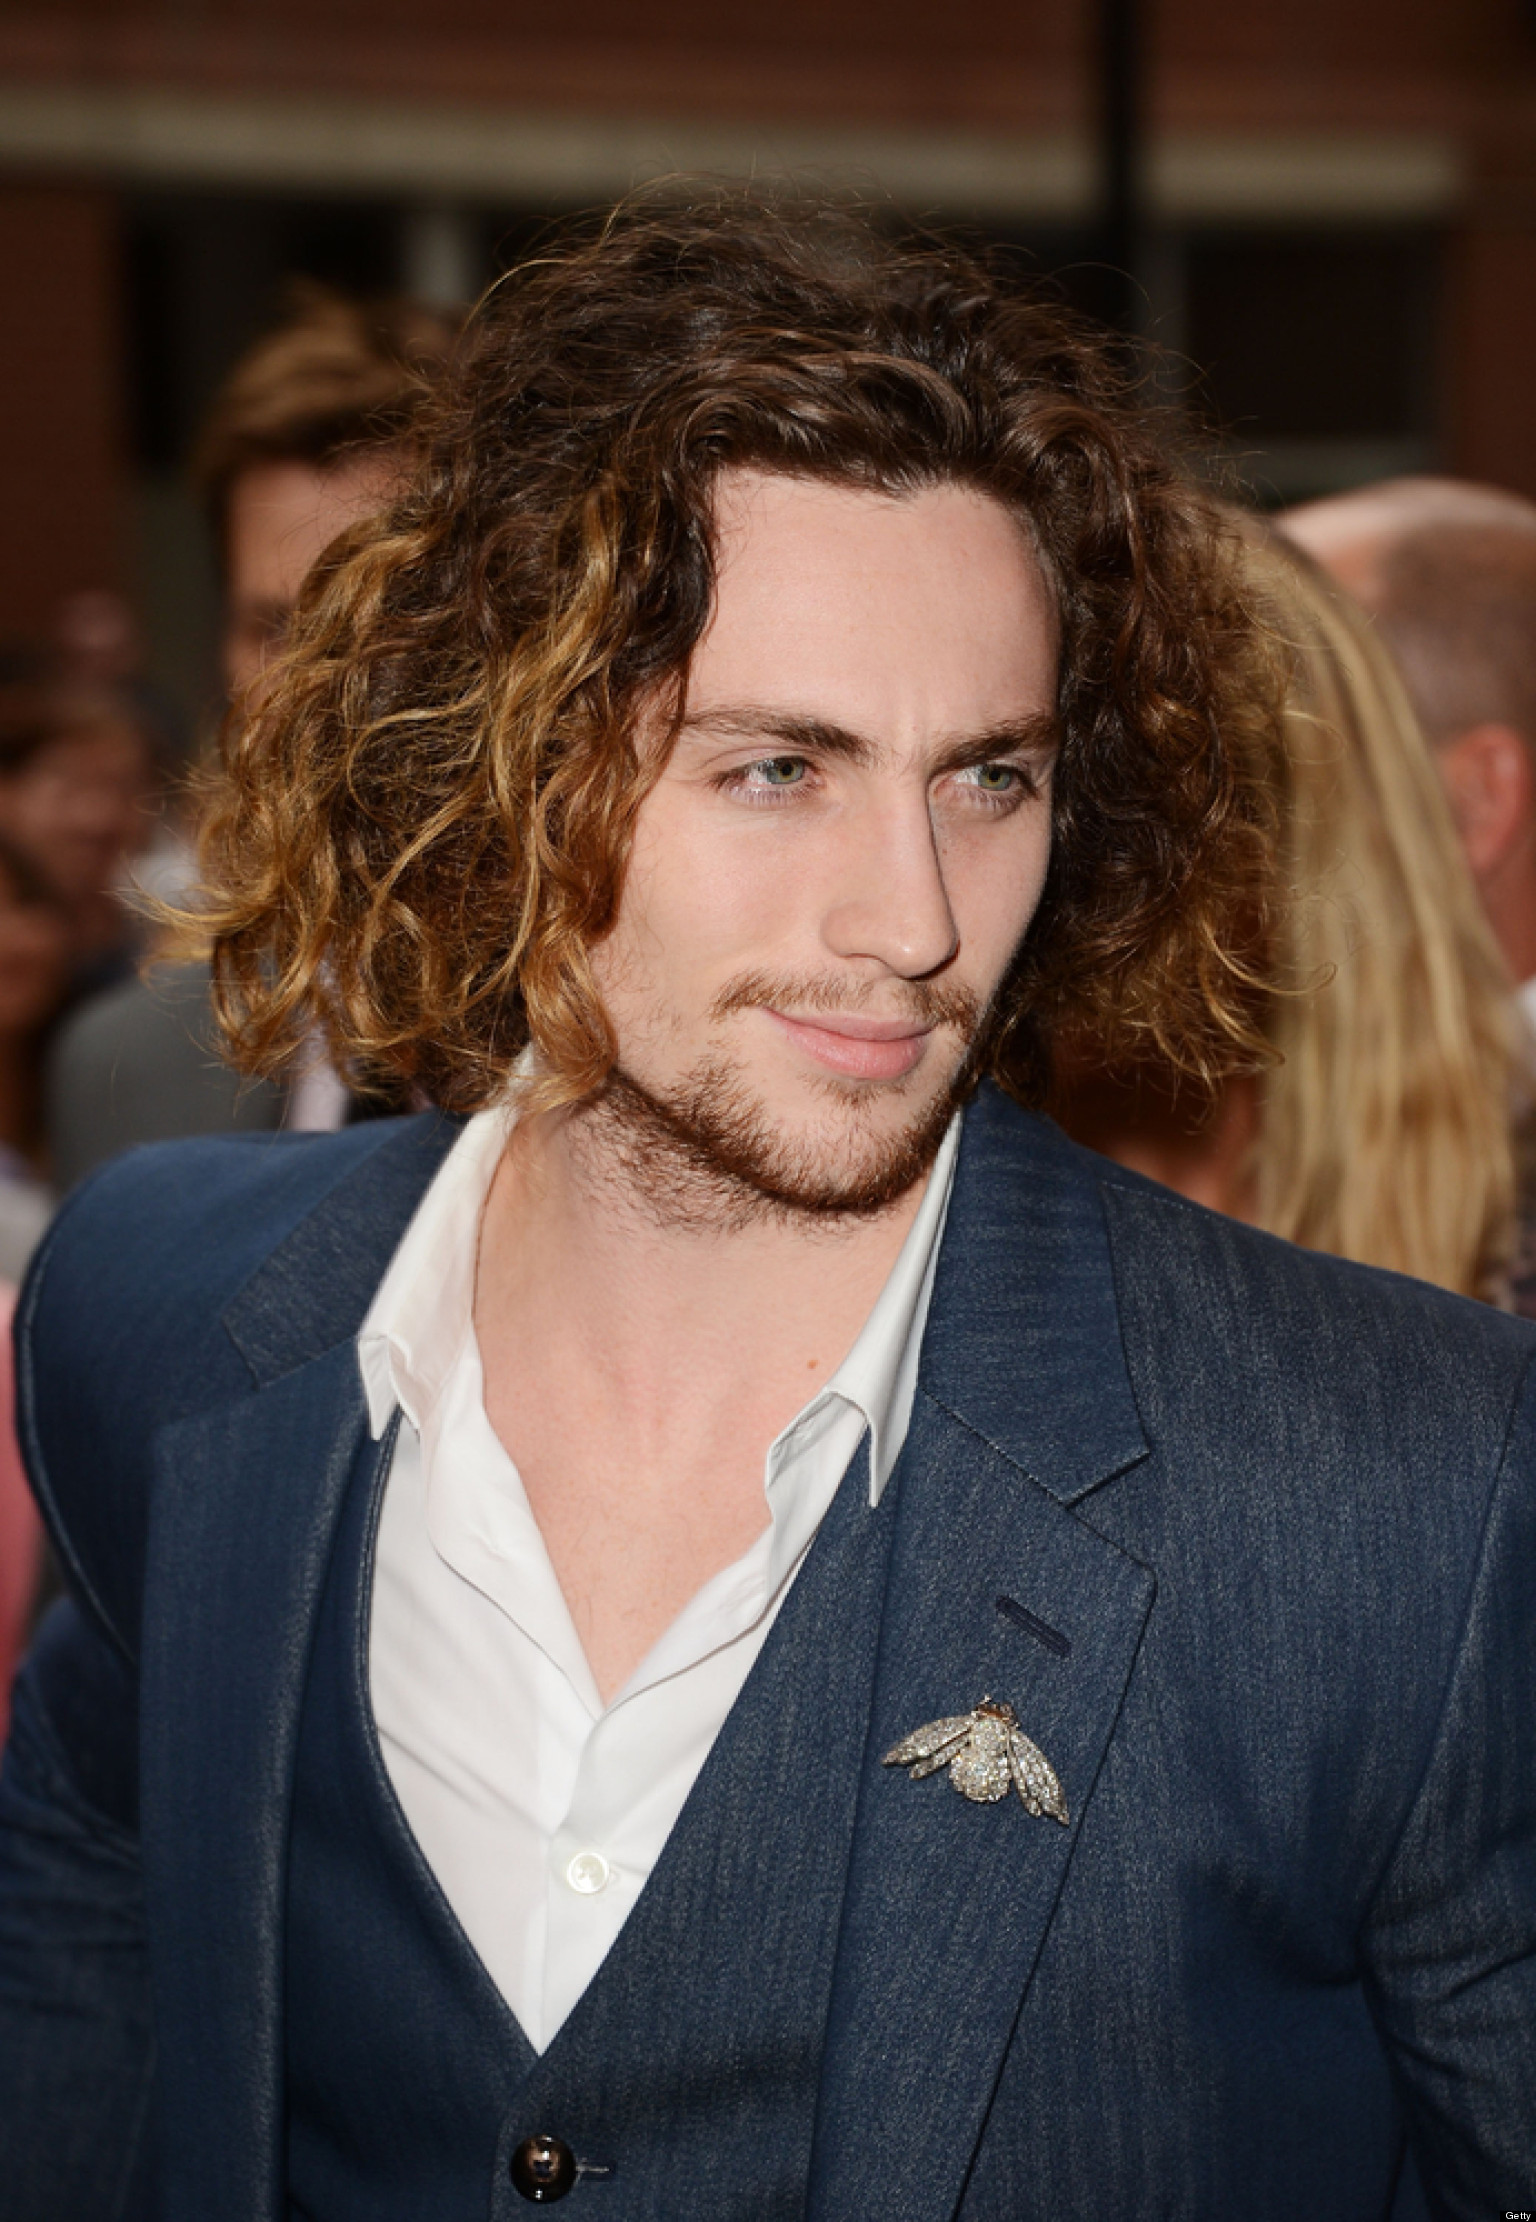 Aaron Johnson In 'Aven...